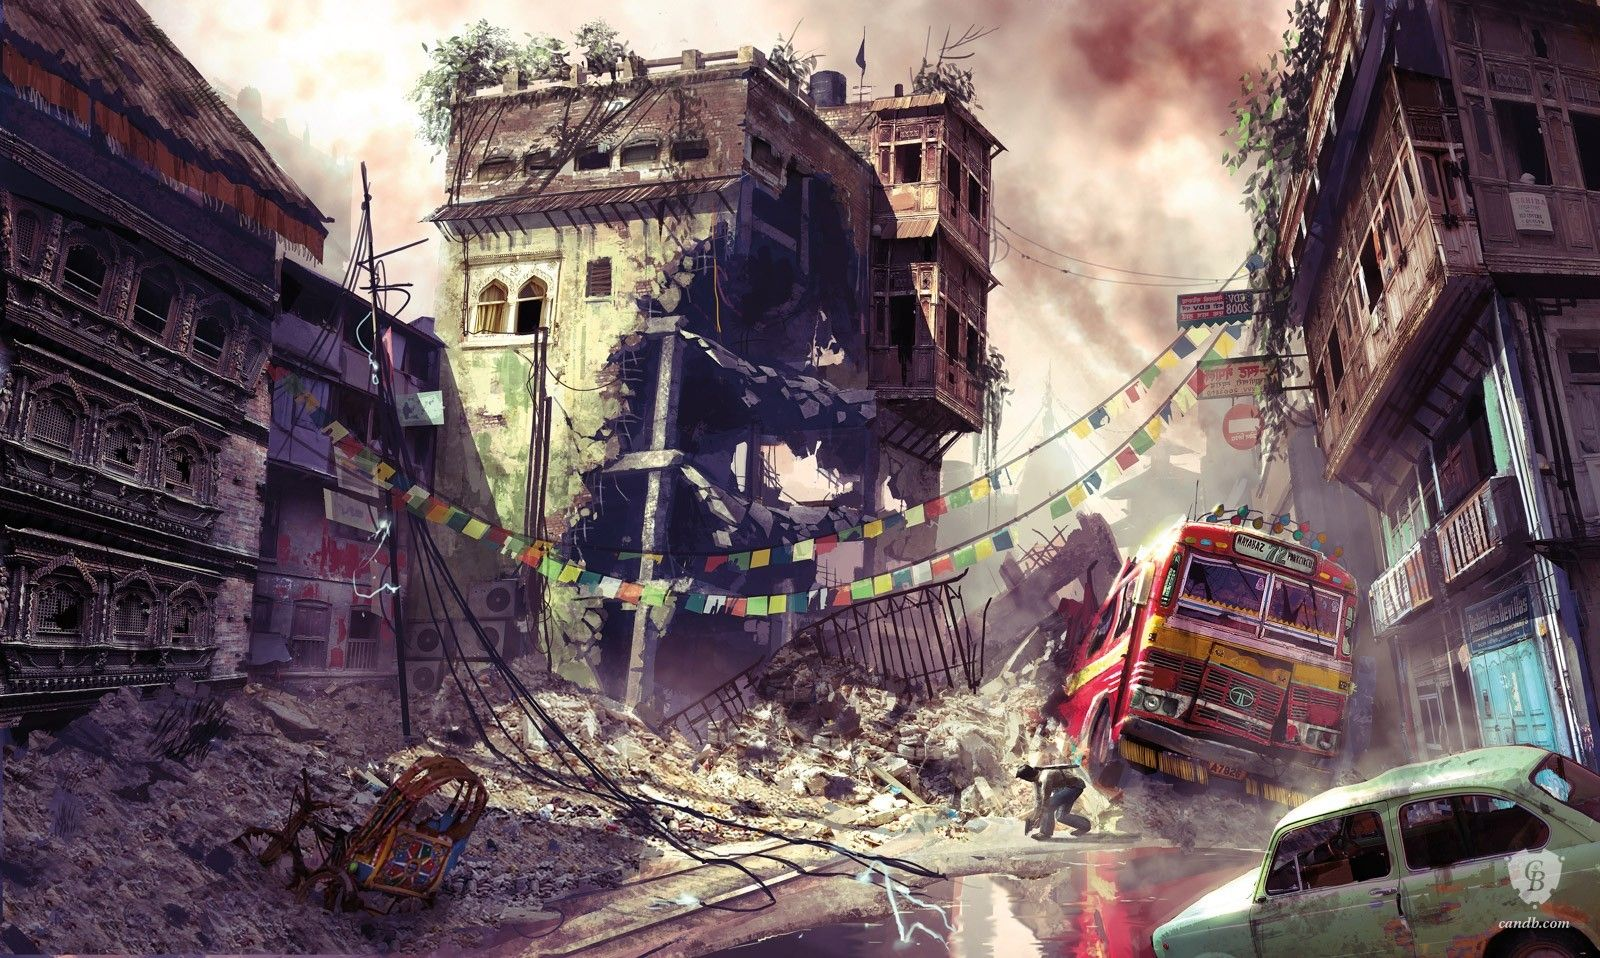 Artwork Warzone Street Scene Uncharted 2 Naughty Dog Uncharted Concept Art Art Challenge